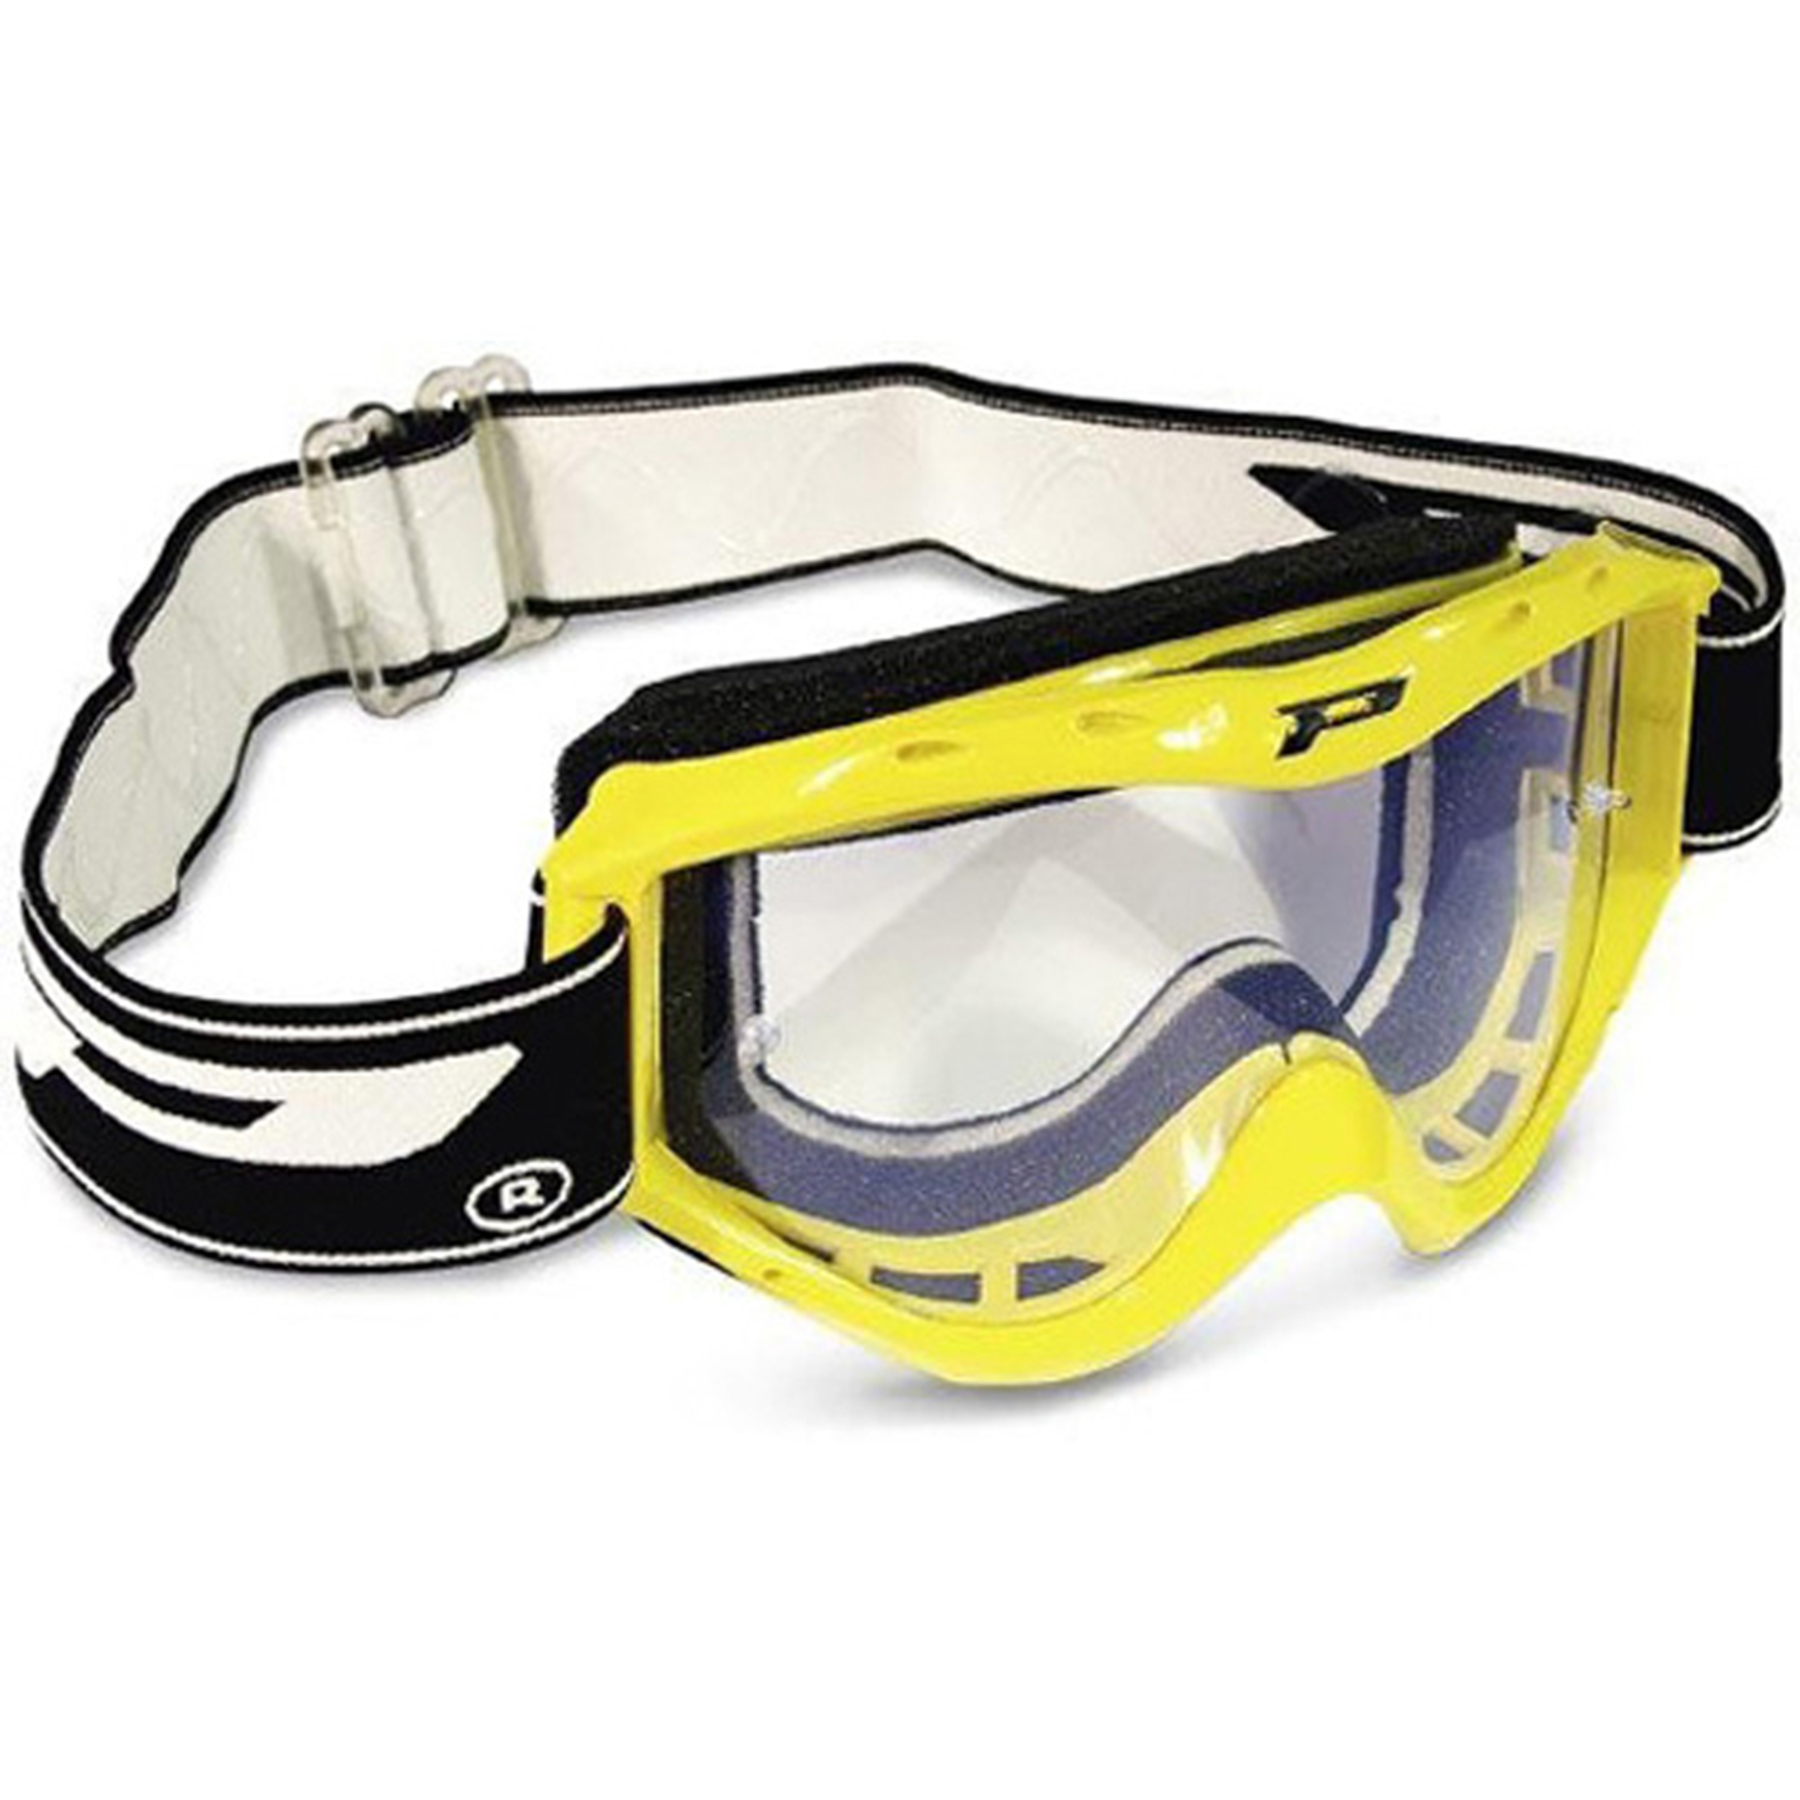 PRO GRIP 3101 KIDS GOGGLES YELLOW